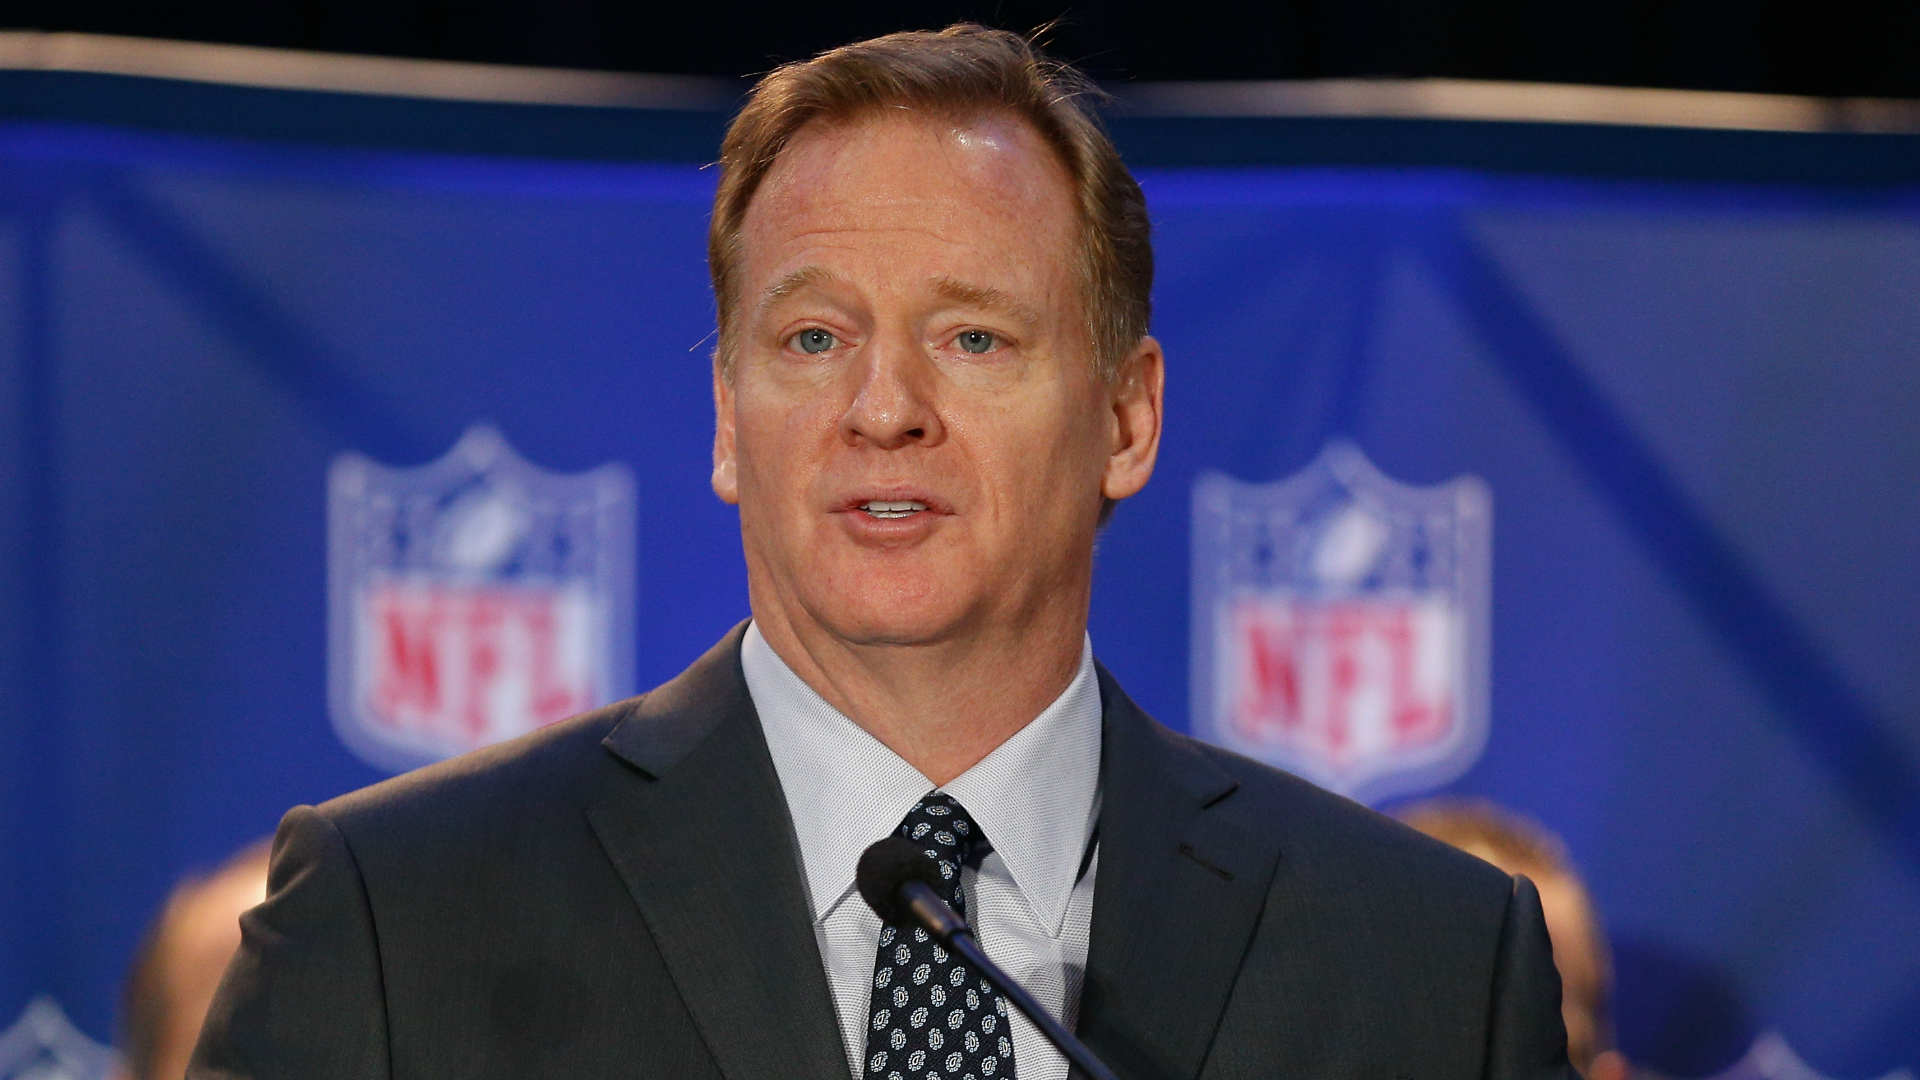 Roger Goodell confirms NFL-NFLPA want new CBA by September